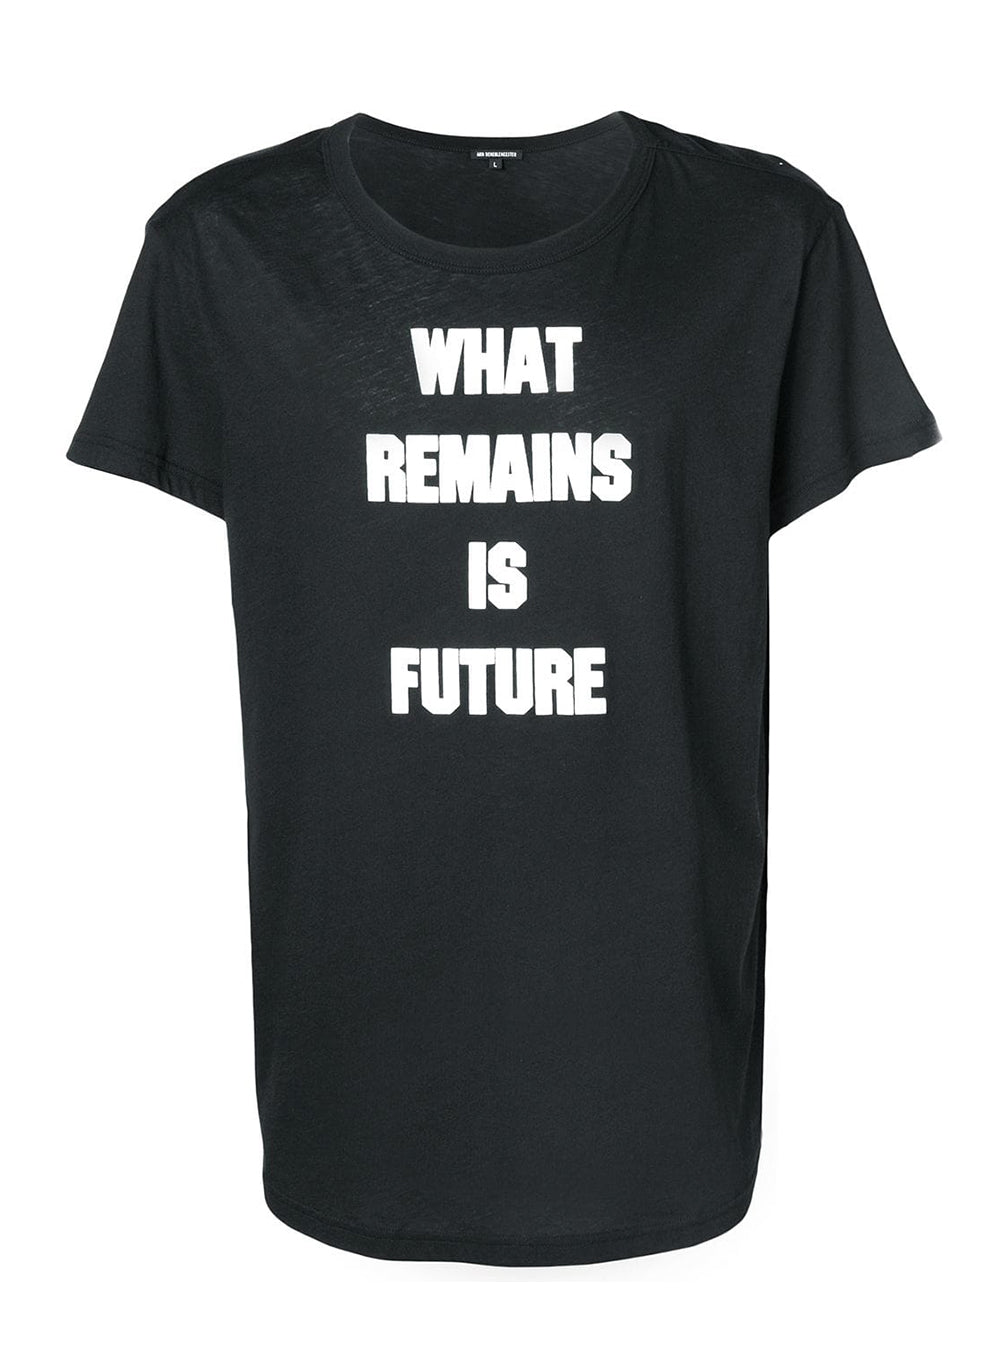 ANN DEMEULEMEESTER | Black/White 'What Remains Is Future' Graphic T-Shirt